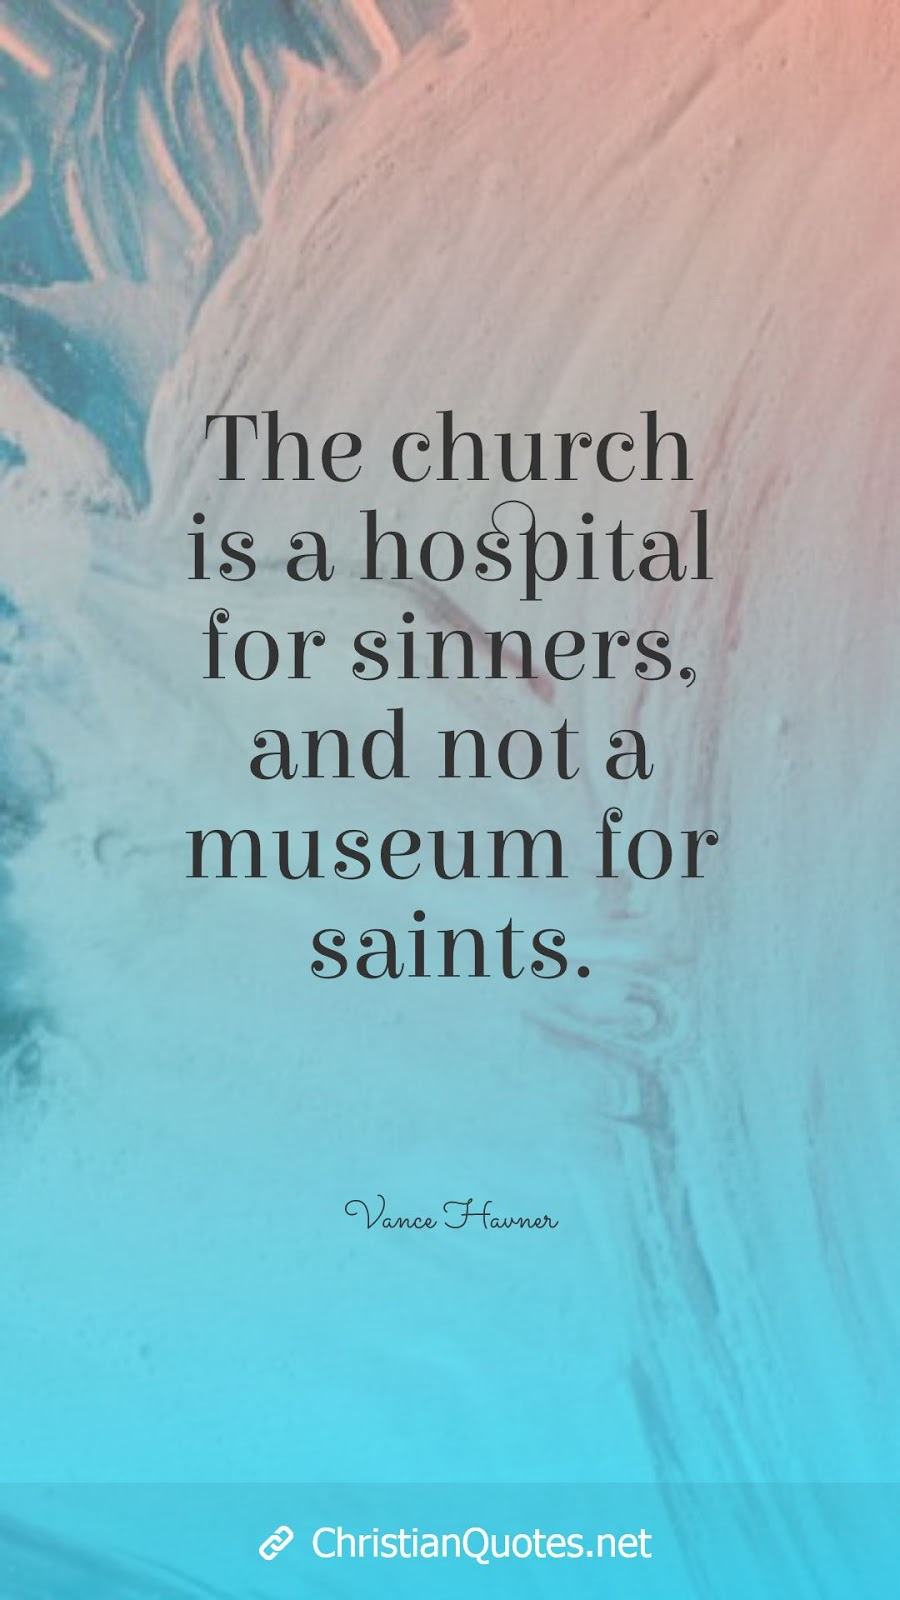 The church is a hospital for sinners, and not a museum for saints.